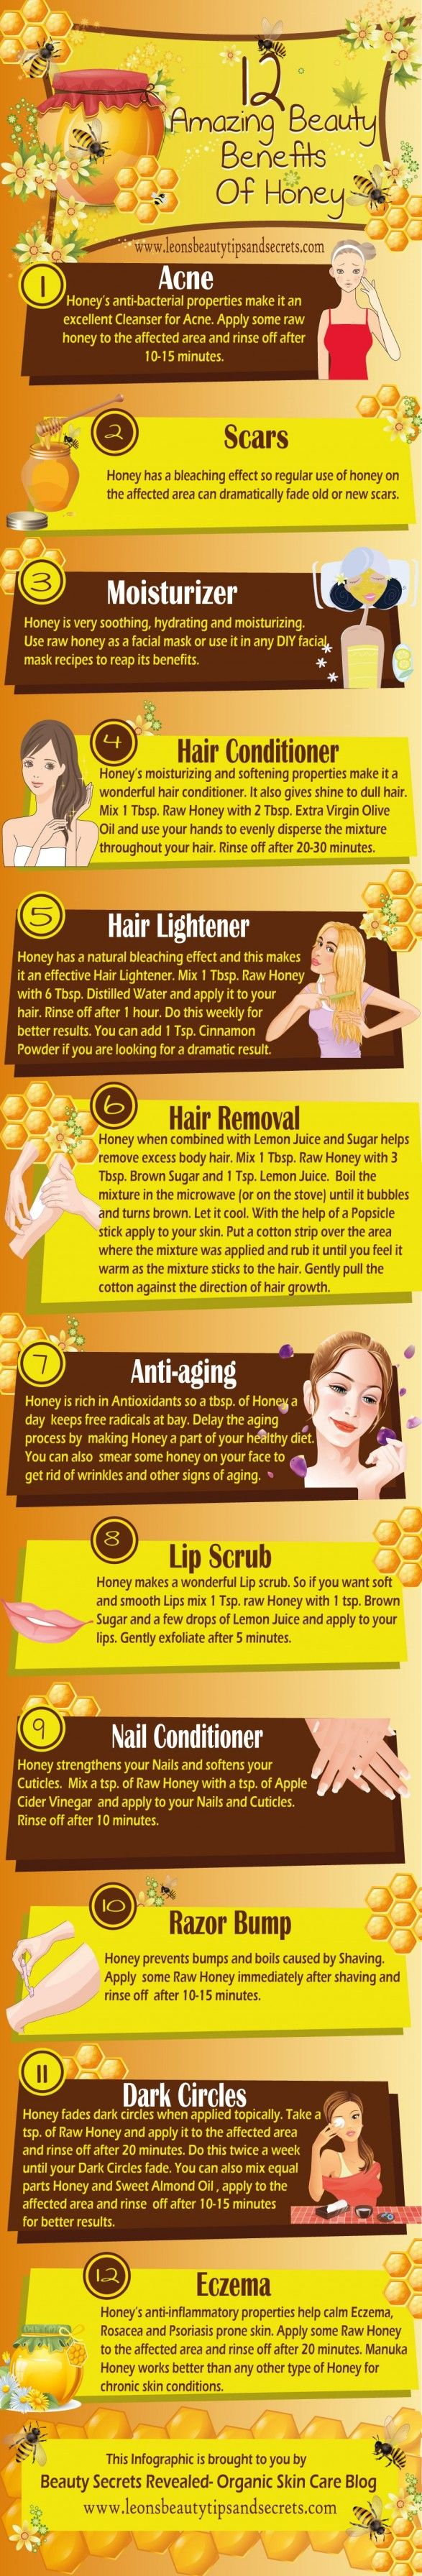 12 Amazing Beauty Benefits of Honey